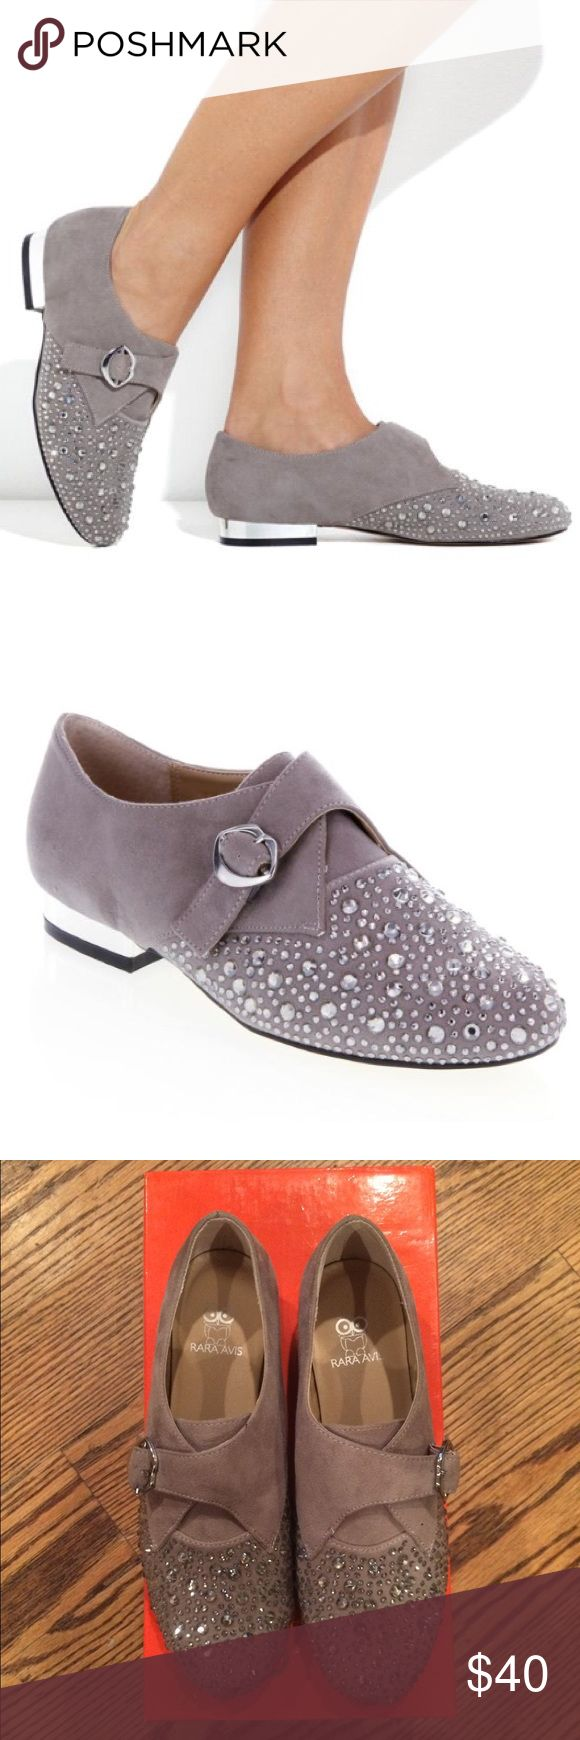 Rara Avis Rhinestone Studded Oxfords Rara Avis by Iris Apfel Rhinestone Studded Oxfords. Featured on HSN these oxfords are super cute and feature mirrored heels & lip shaped buckle closure. Rara Avis Shoes